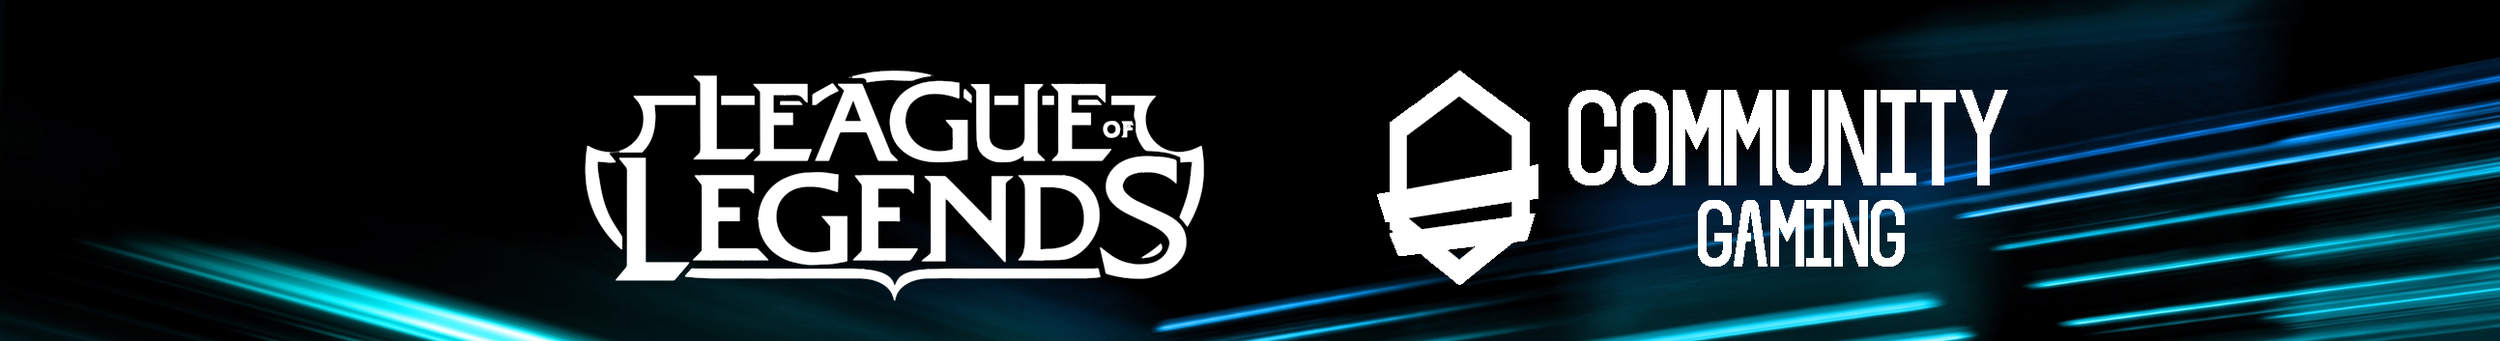 Banner_LeagueofLegends.png